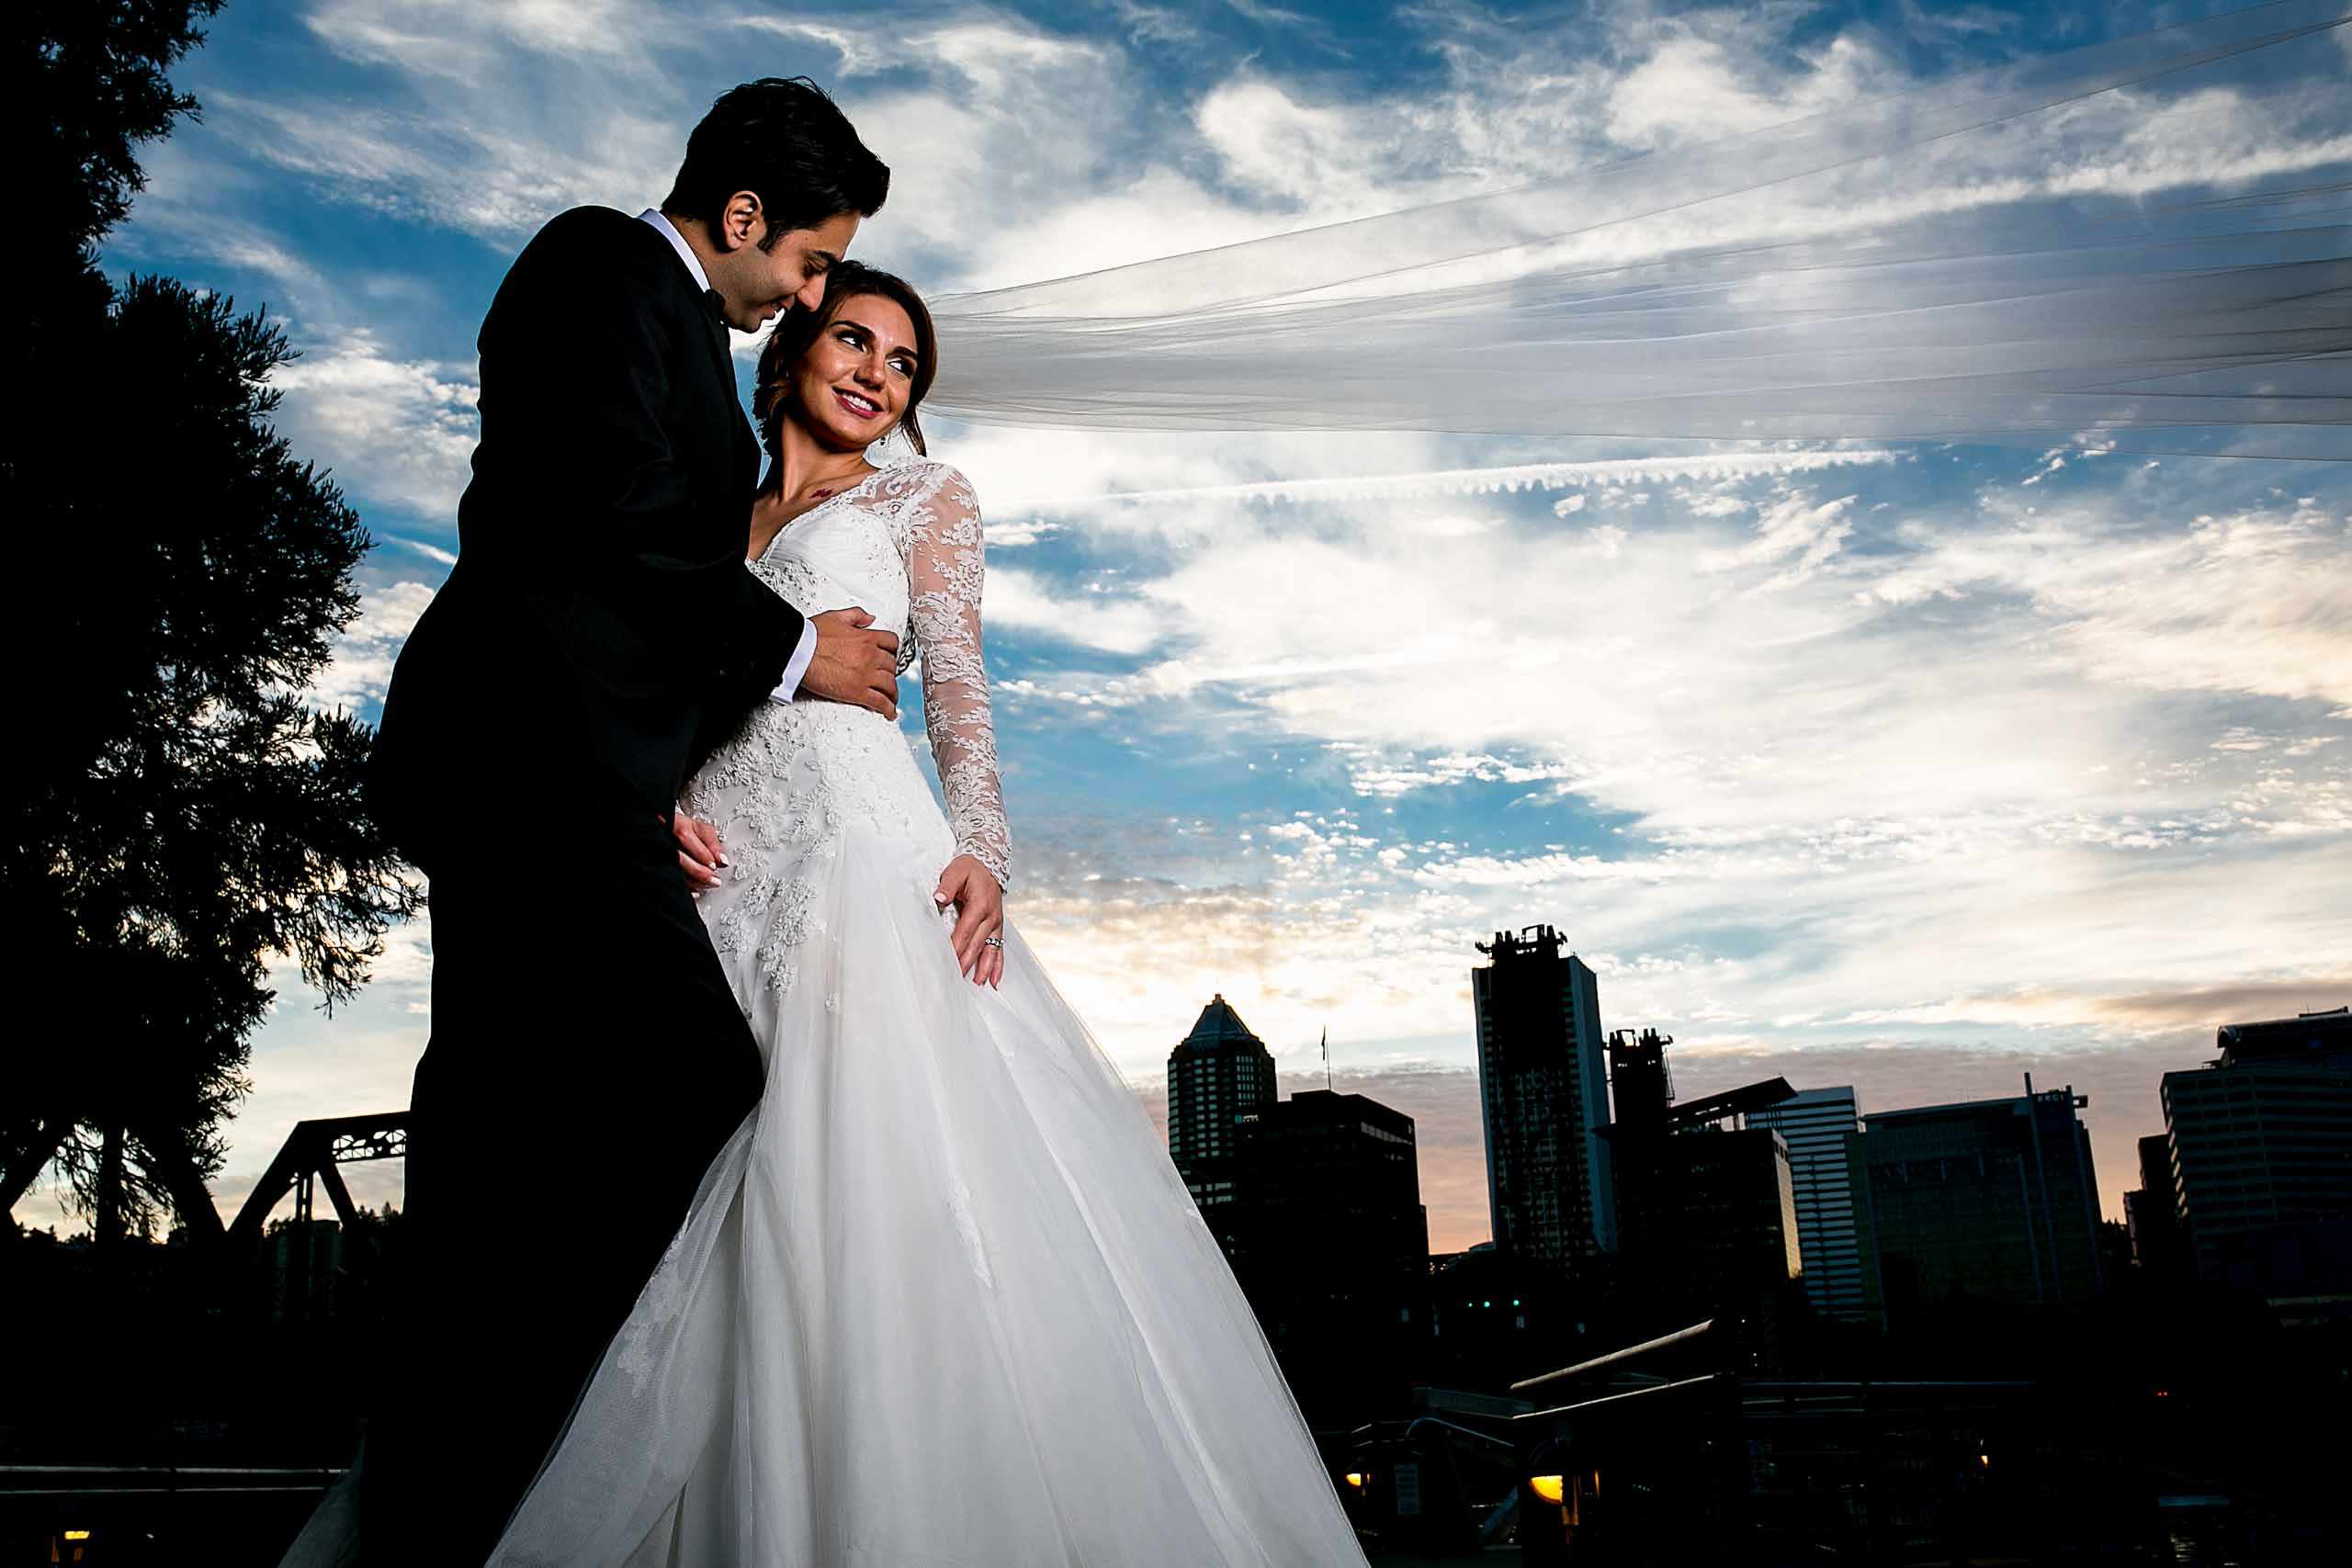 Silhouette photo of Portland cityscape with a bride and groom beautifully lit up during their Portland Persian wedding at the Portland Art Museum